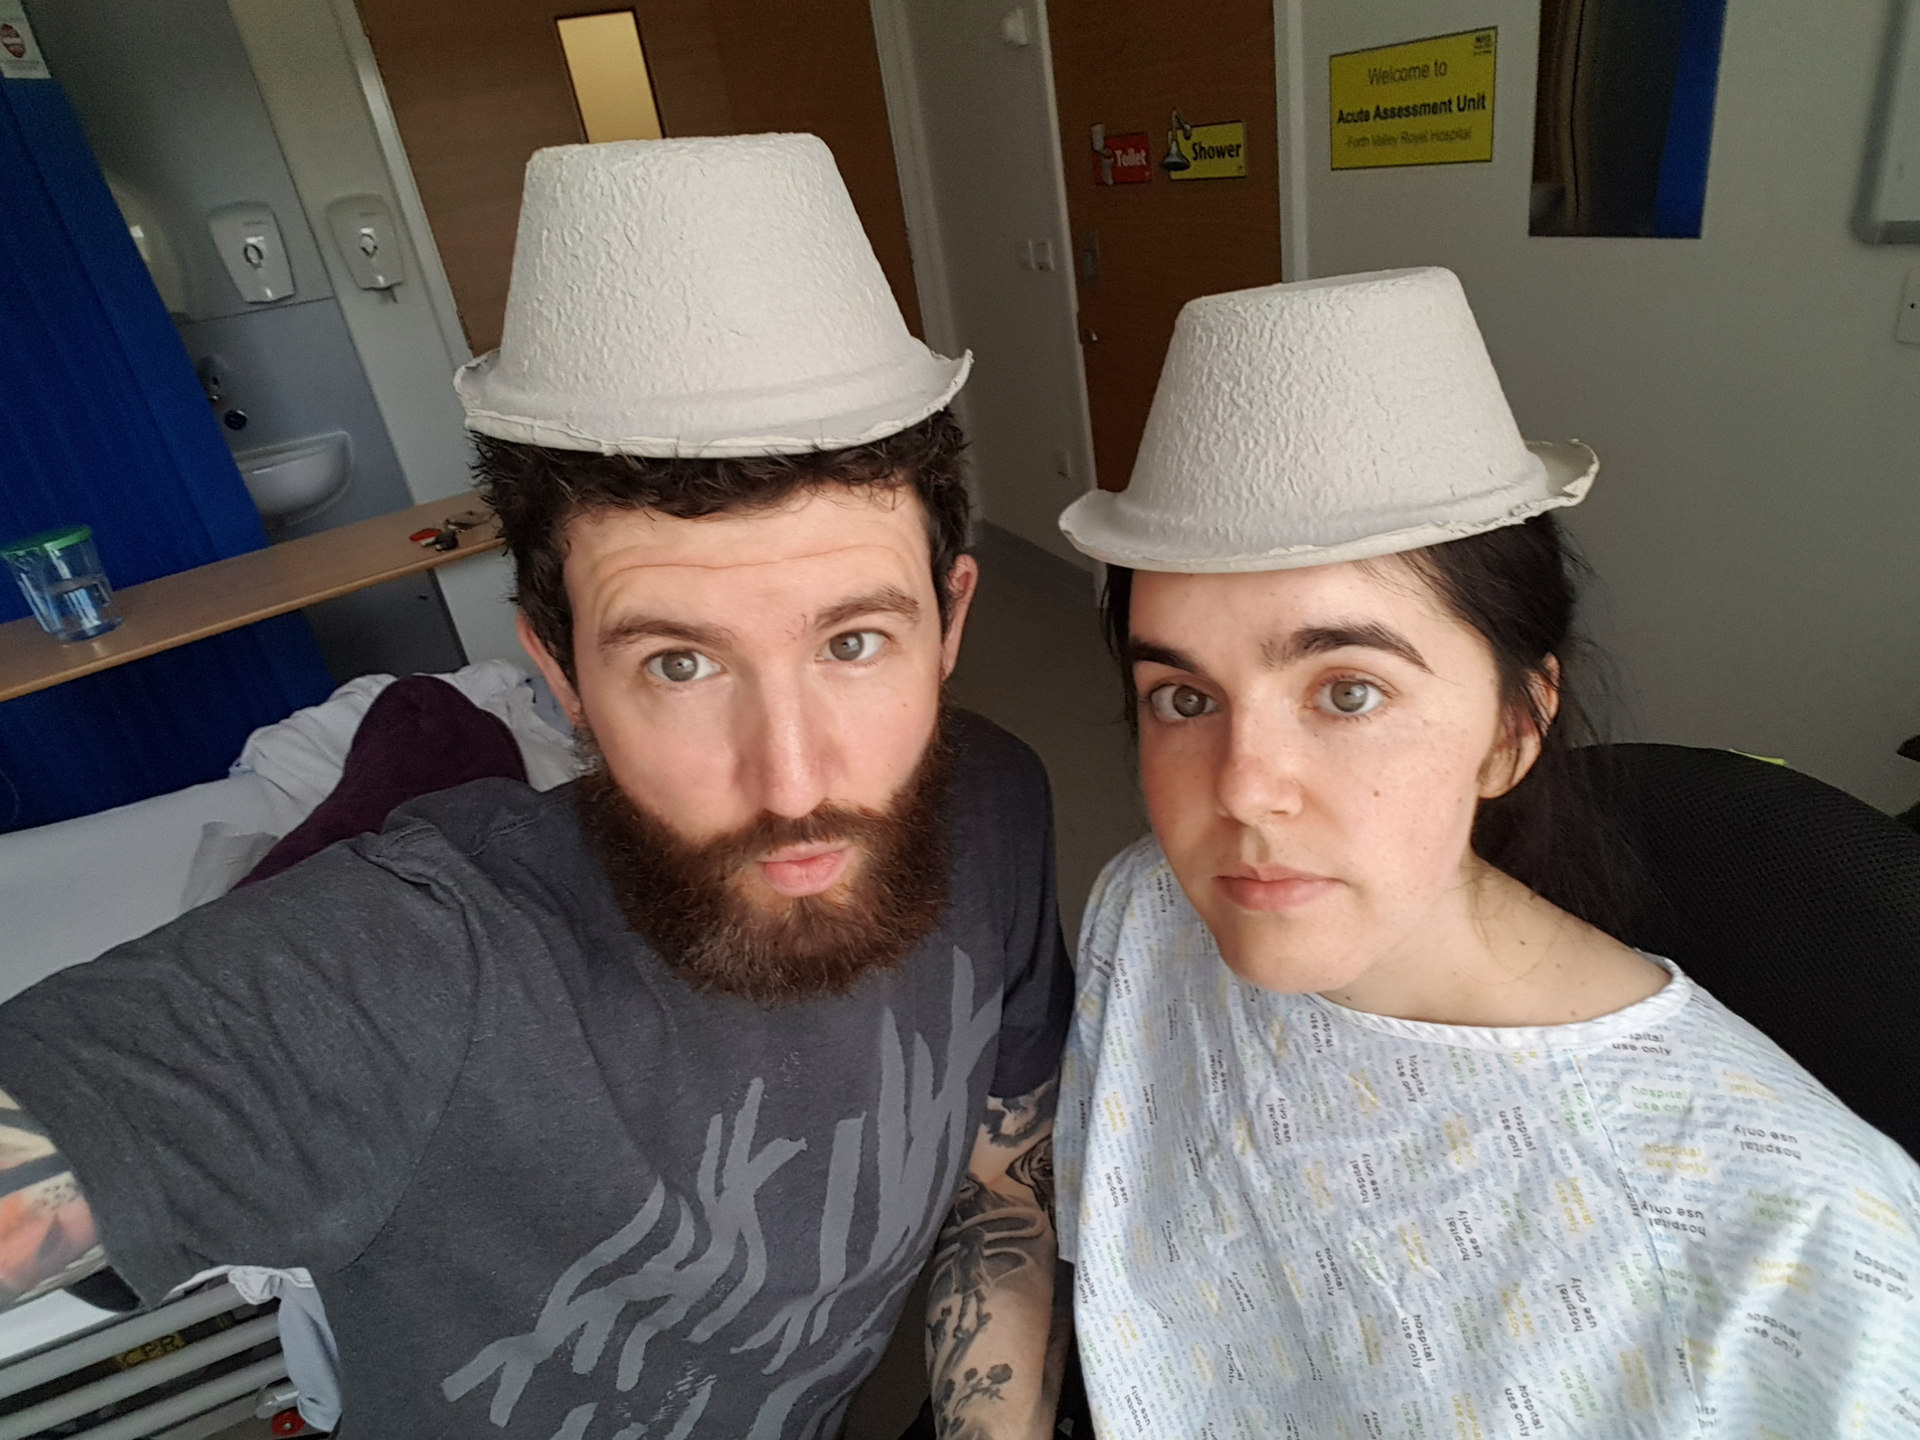 Trying to lighten the mood with urine bowls as hats. Being In Hospital Ain't Easy When You Have Muscular Dystrophy